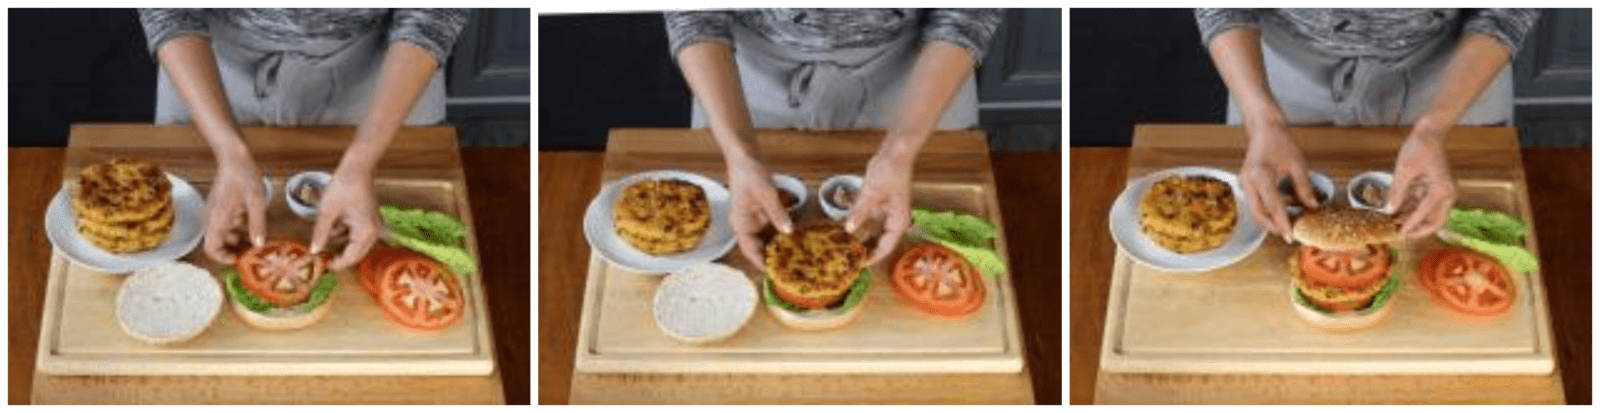 Stuffing the vegetarian hamburger